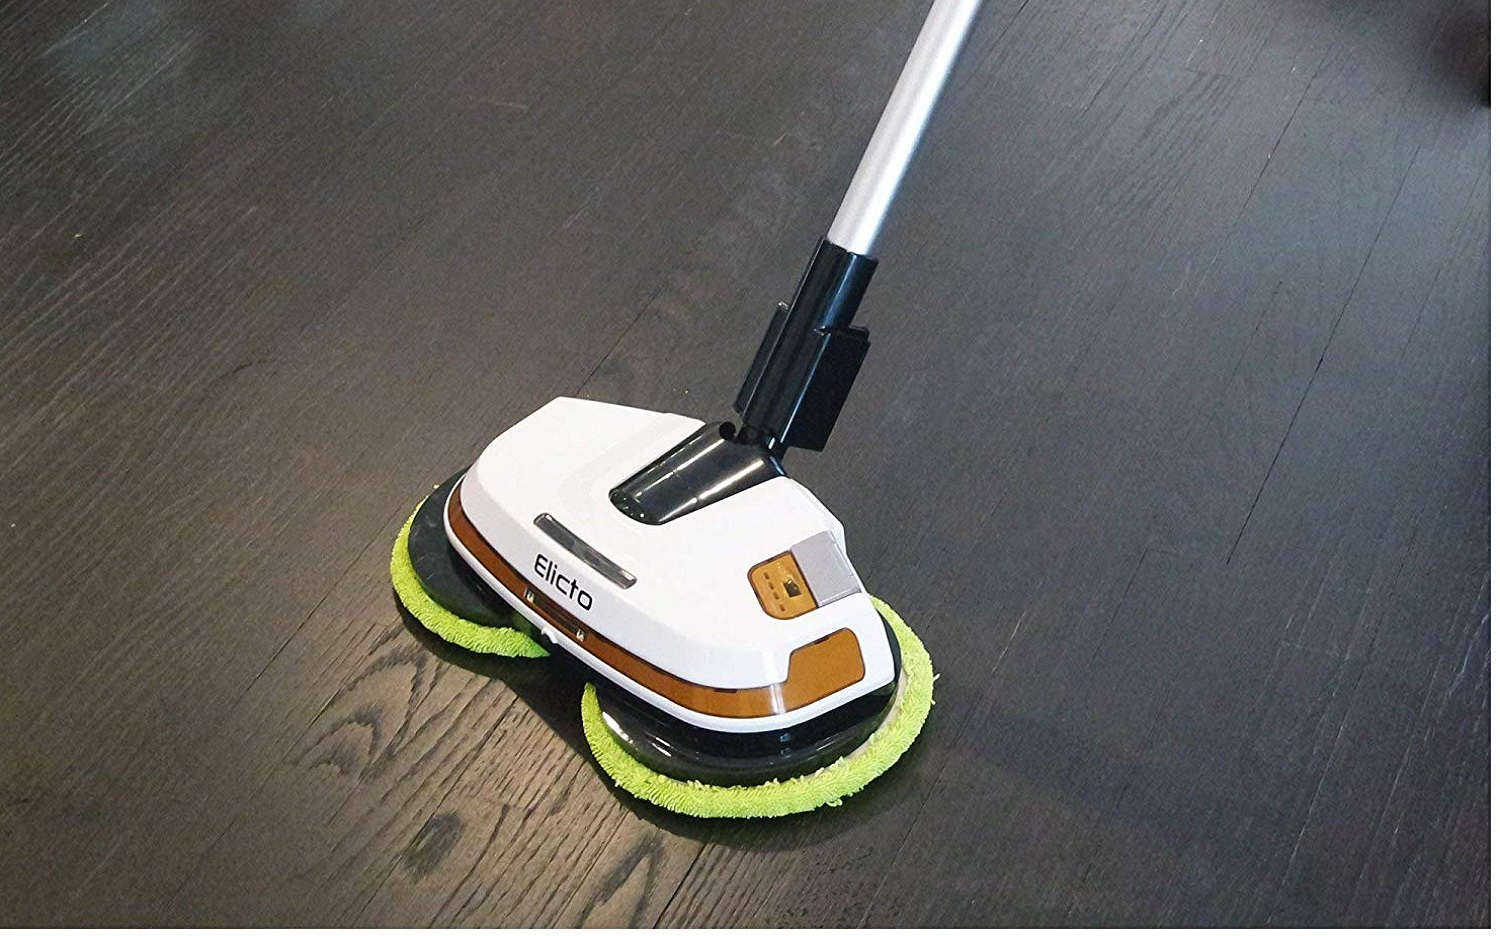 Elicto ES530 3-in-1 Cordless Spin Floor Cleaner Electronic Wireless Mop